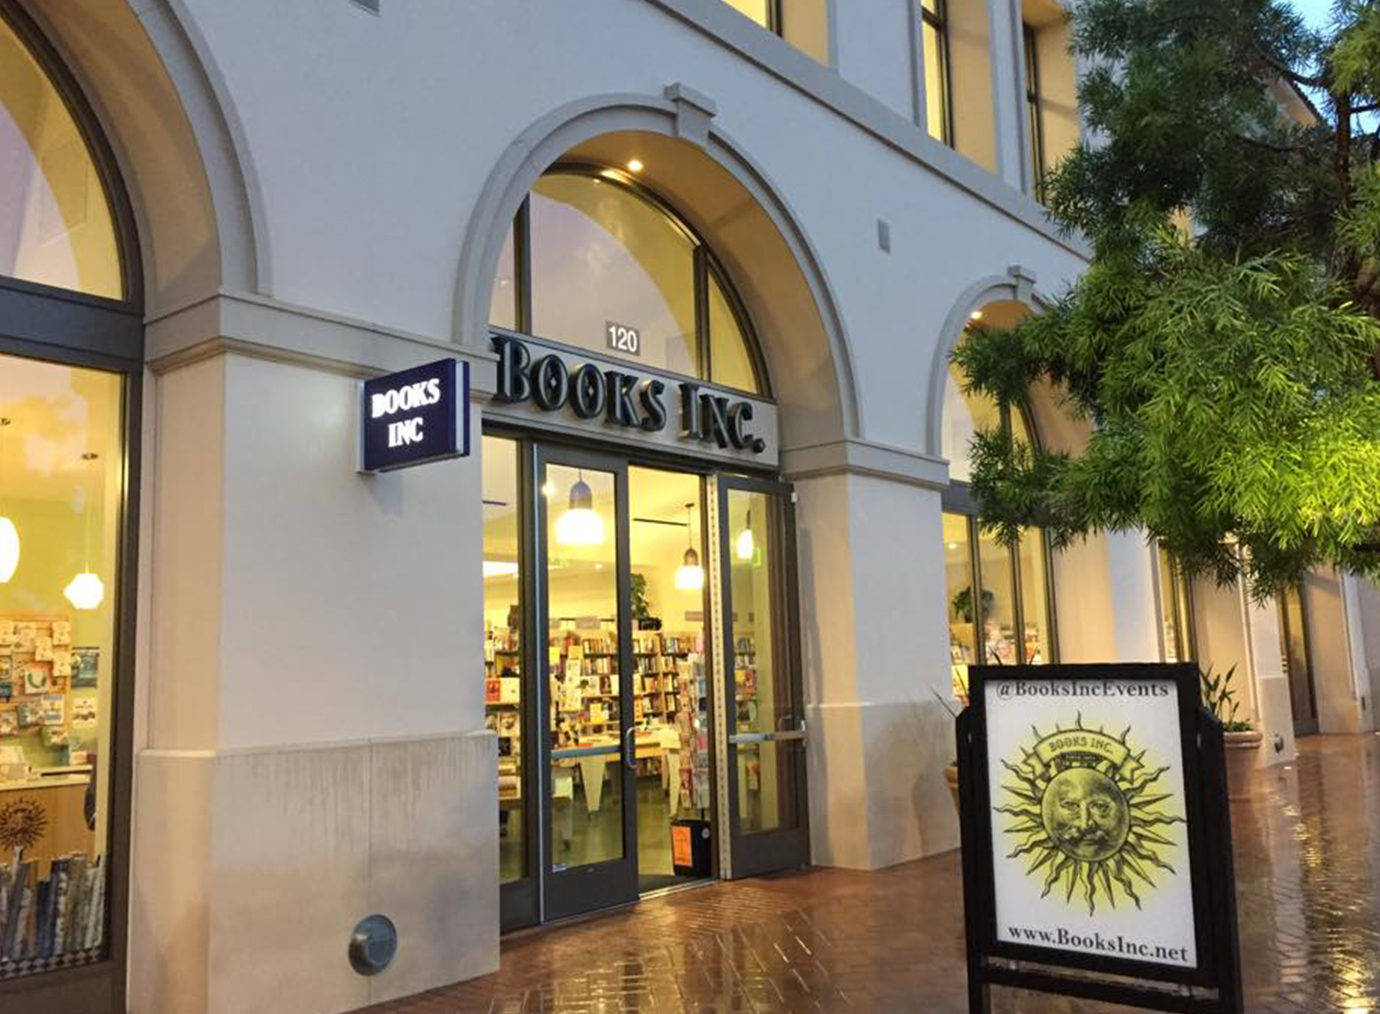 Books Inc. Santa Clara location